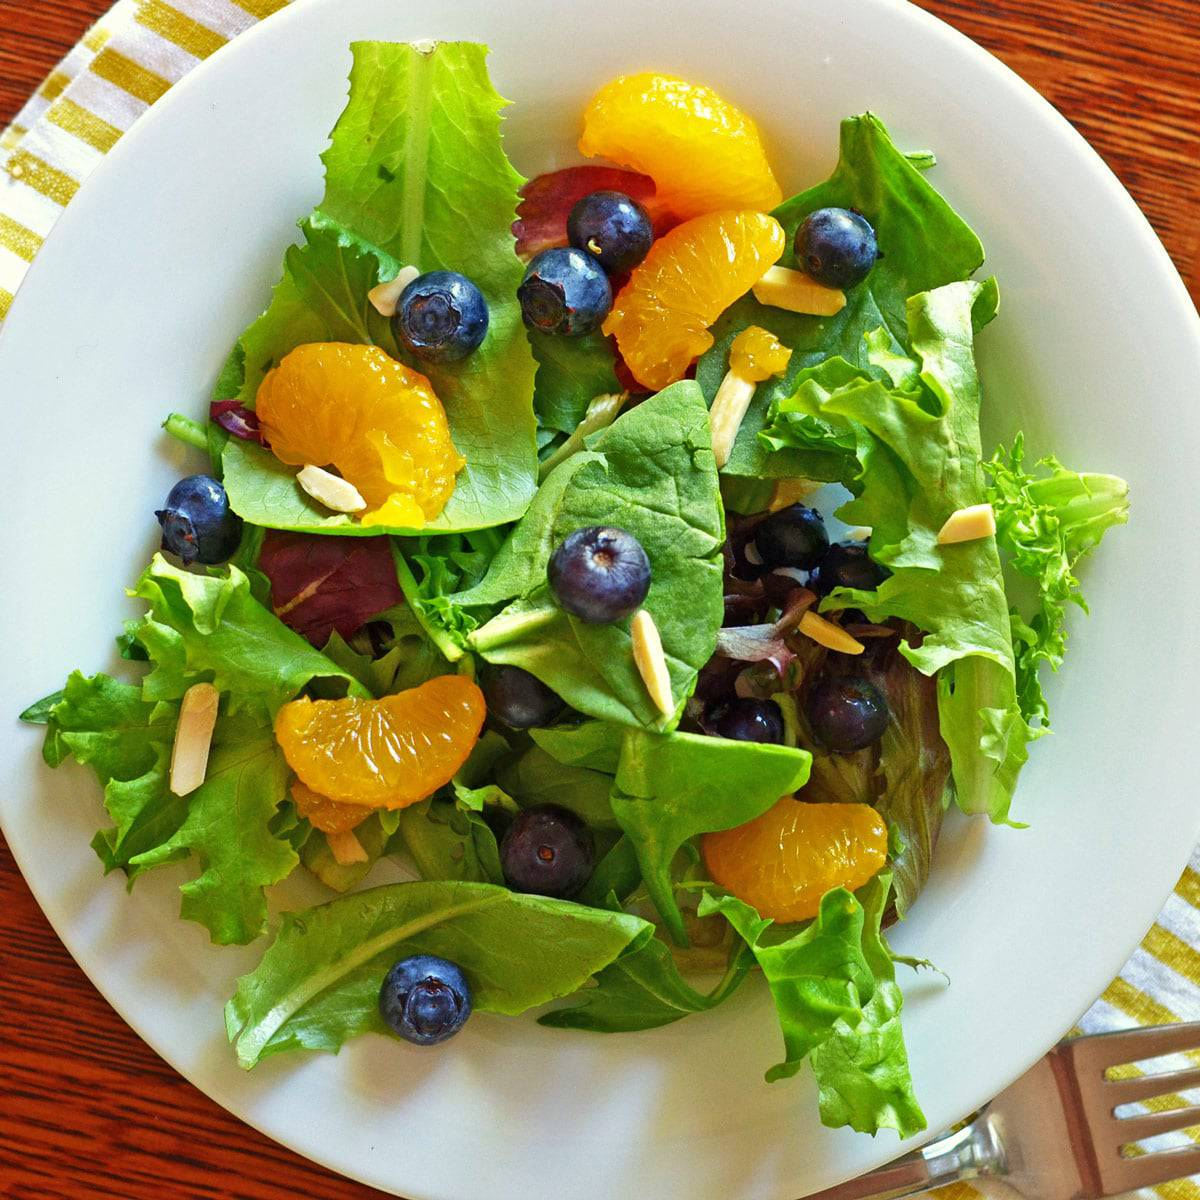 Plate of mandarin orange salad with blueberries.